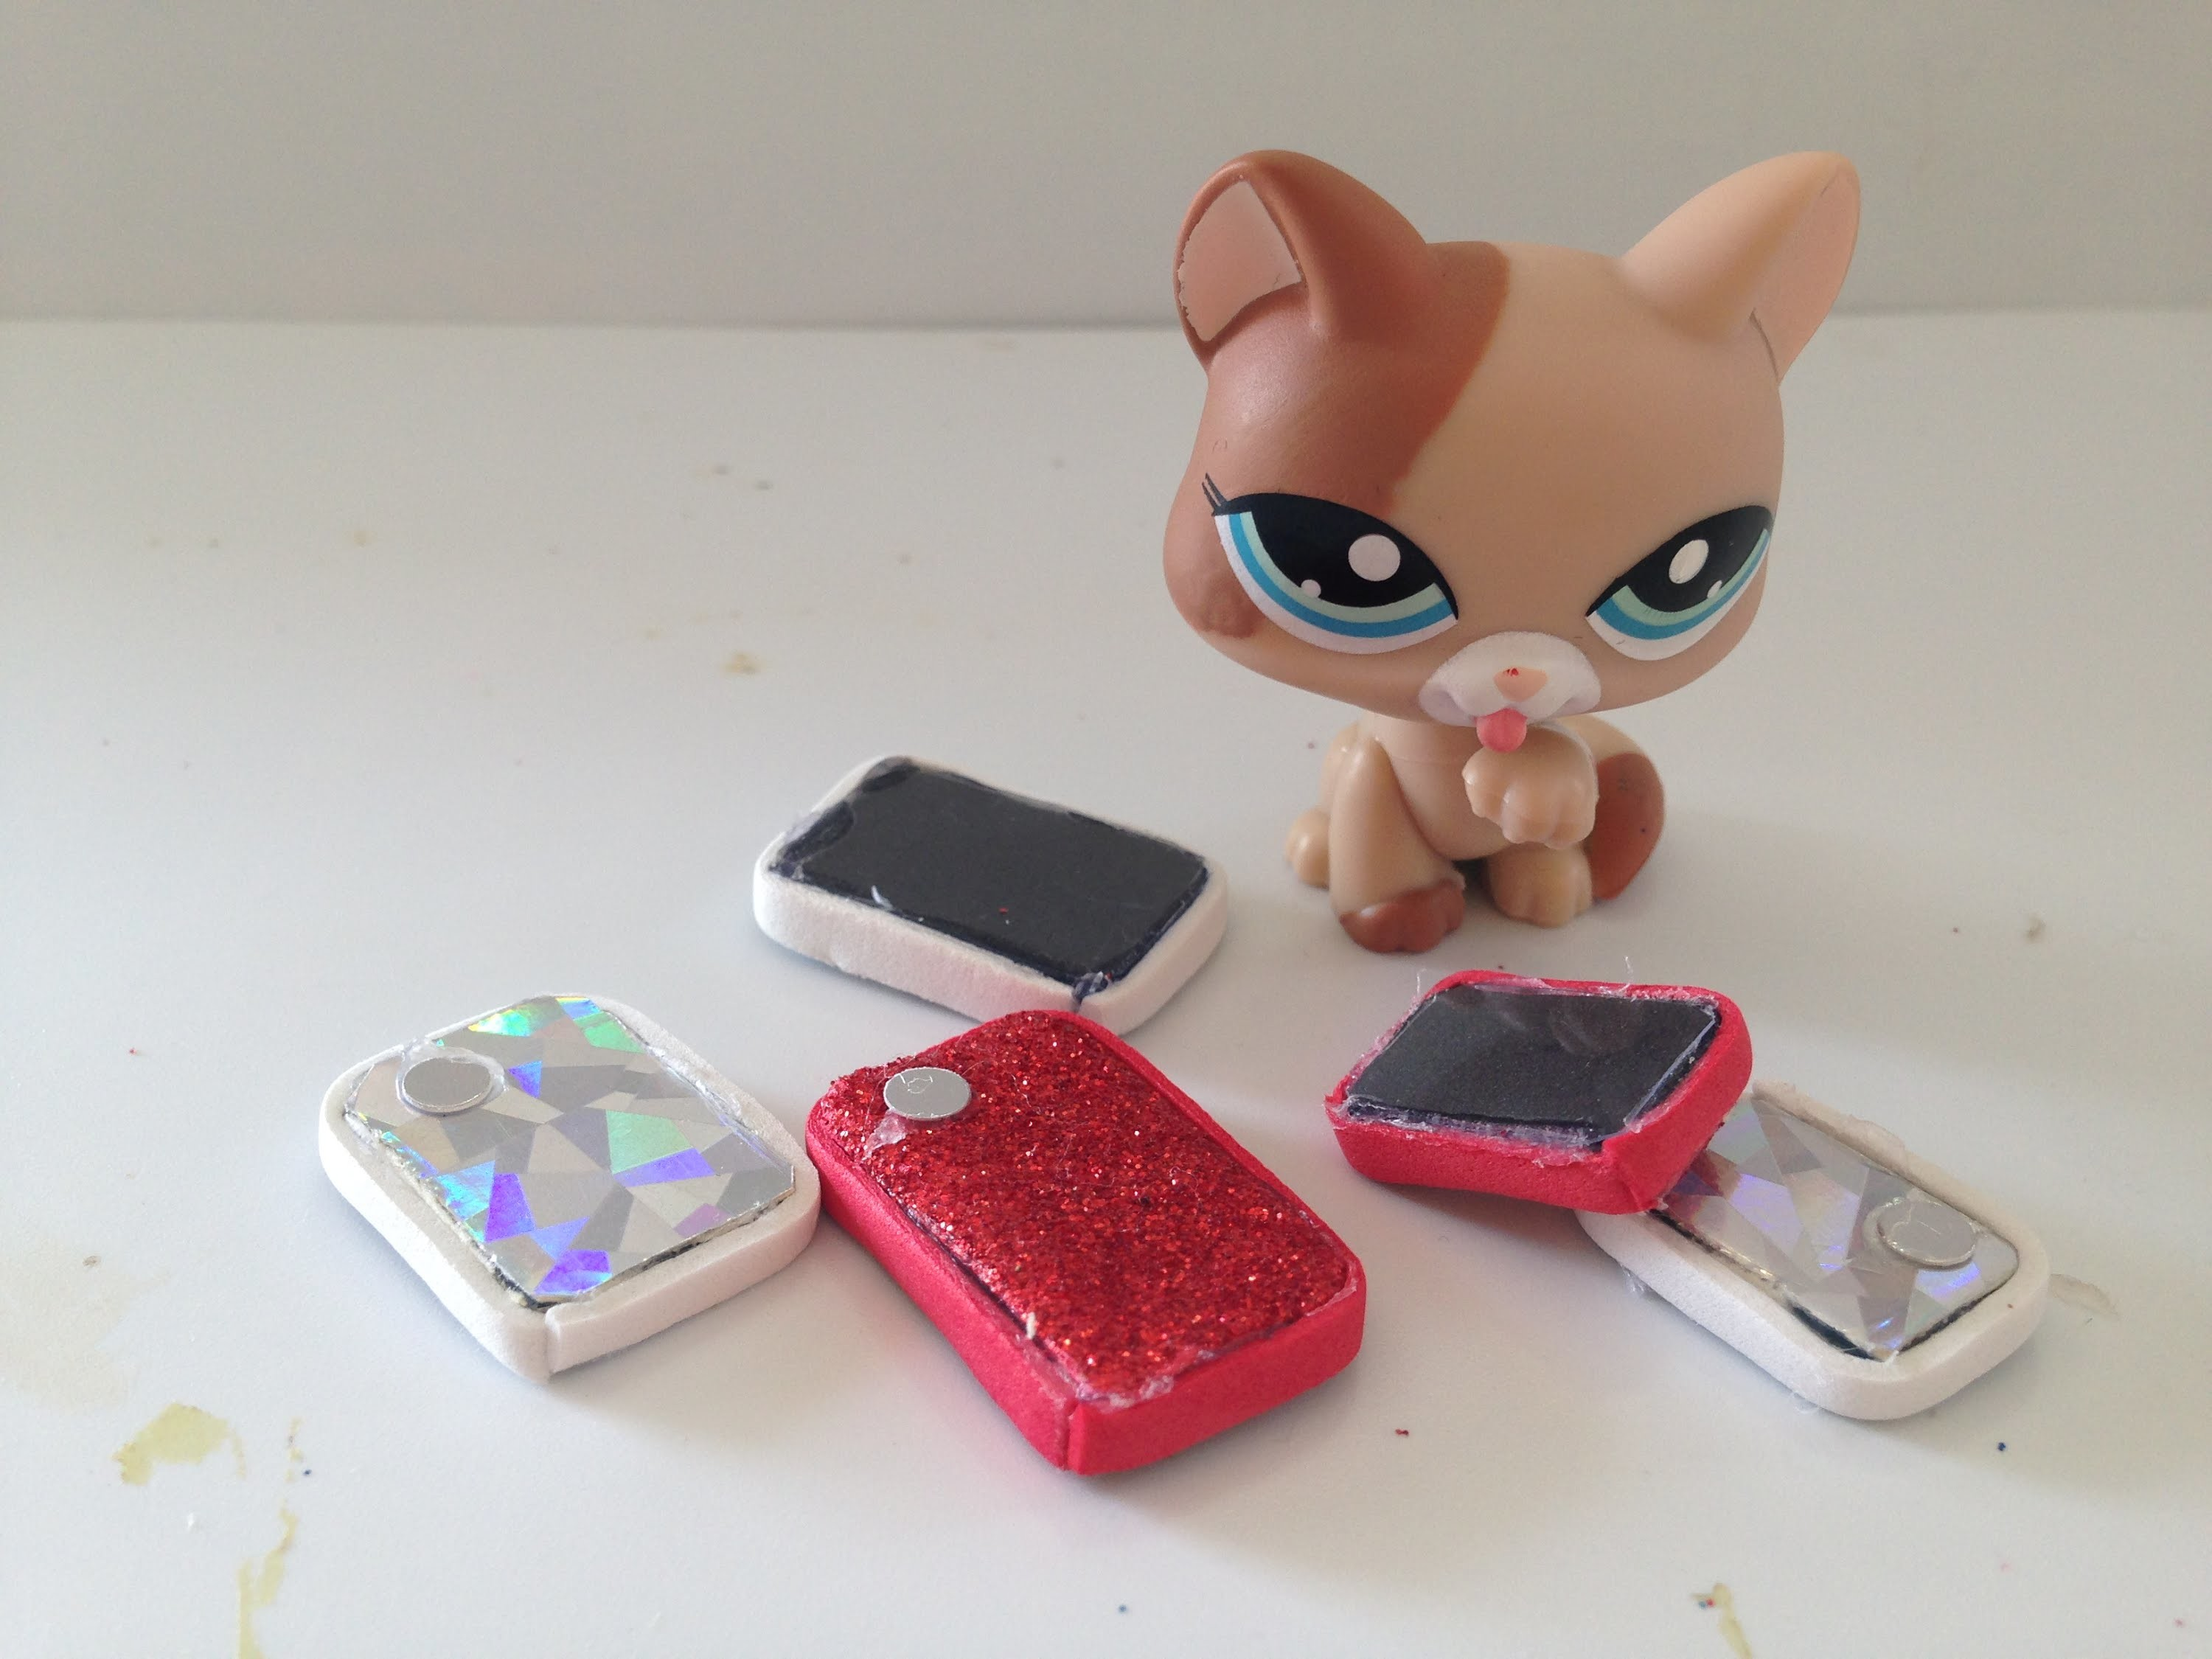 How to make a Doll.LPS cell phone